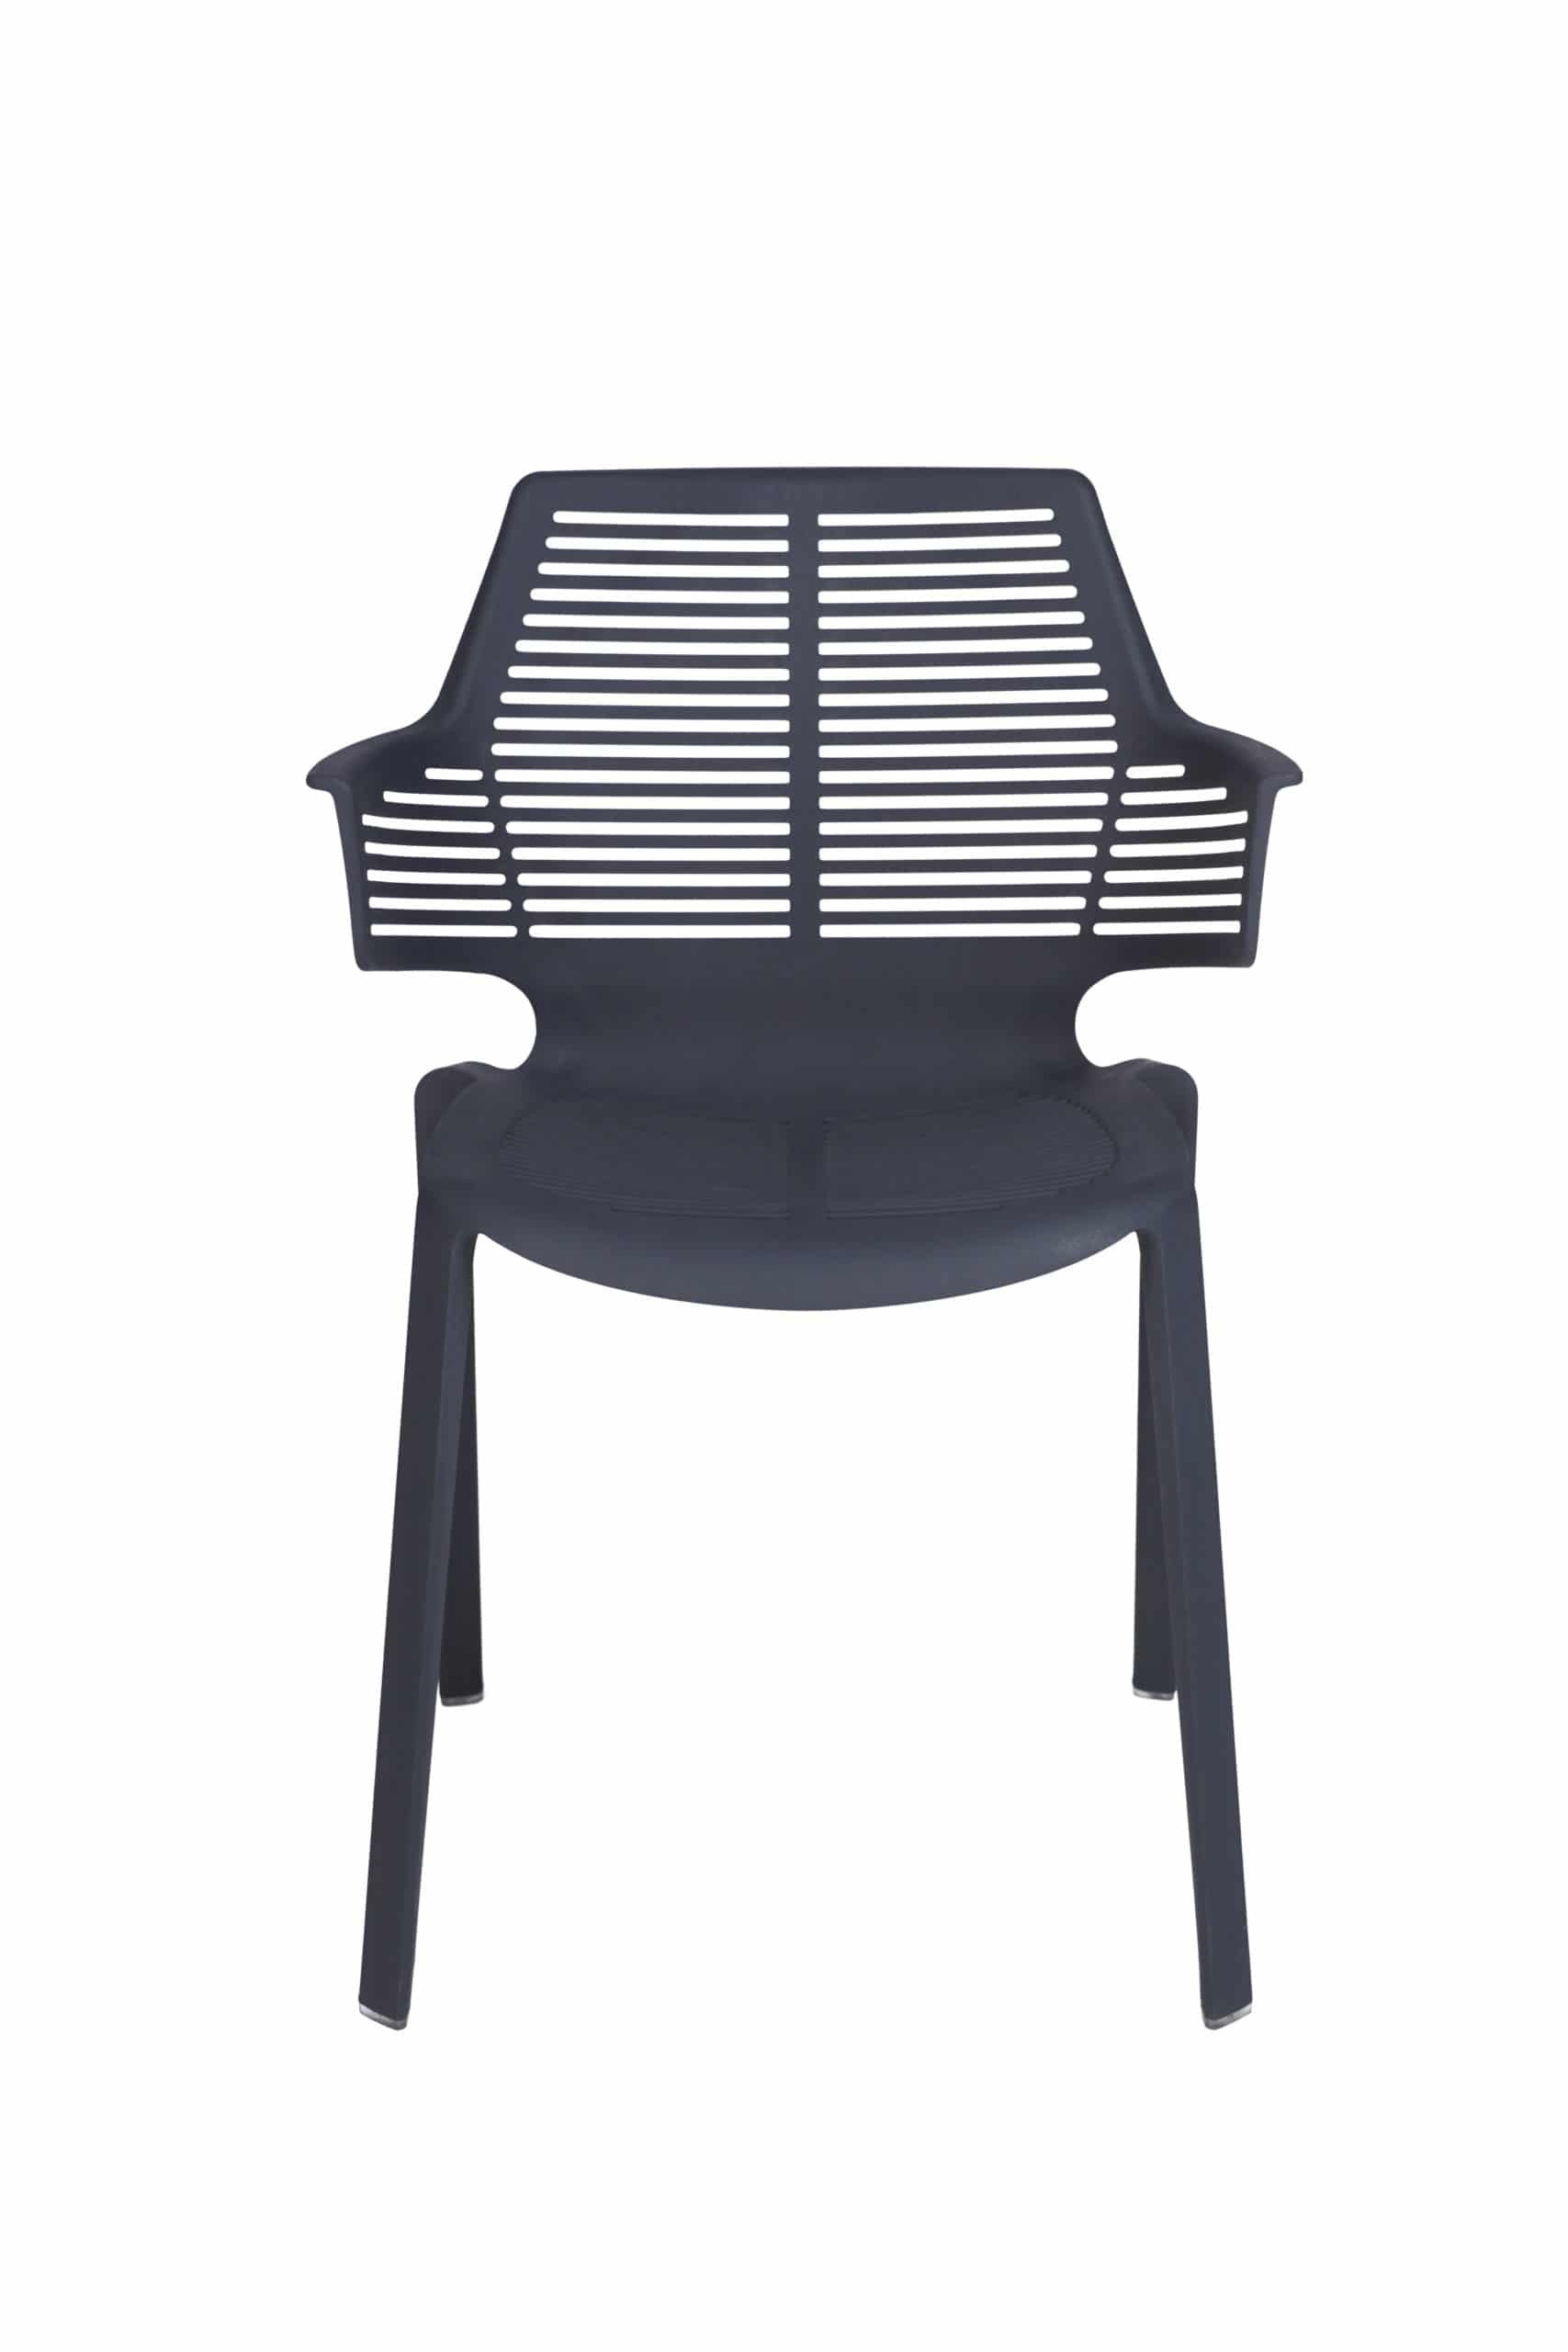 <p>Outdoor Furniture Contemporary Collection – Ajo Armchair – Dark-Grey.</p> <p> </p> <p>Armchair designed for indoor and outdoor use available in a variety of colours, capturing essential features such as clear identity, lightness, stability, functionality, ergonomics and care for the environment. Comfort, Modernity, style and durability</p>